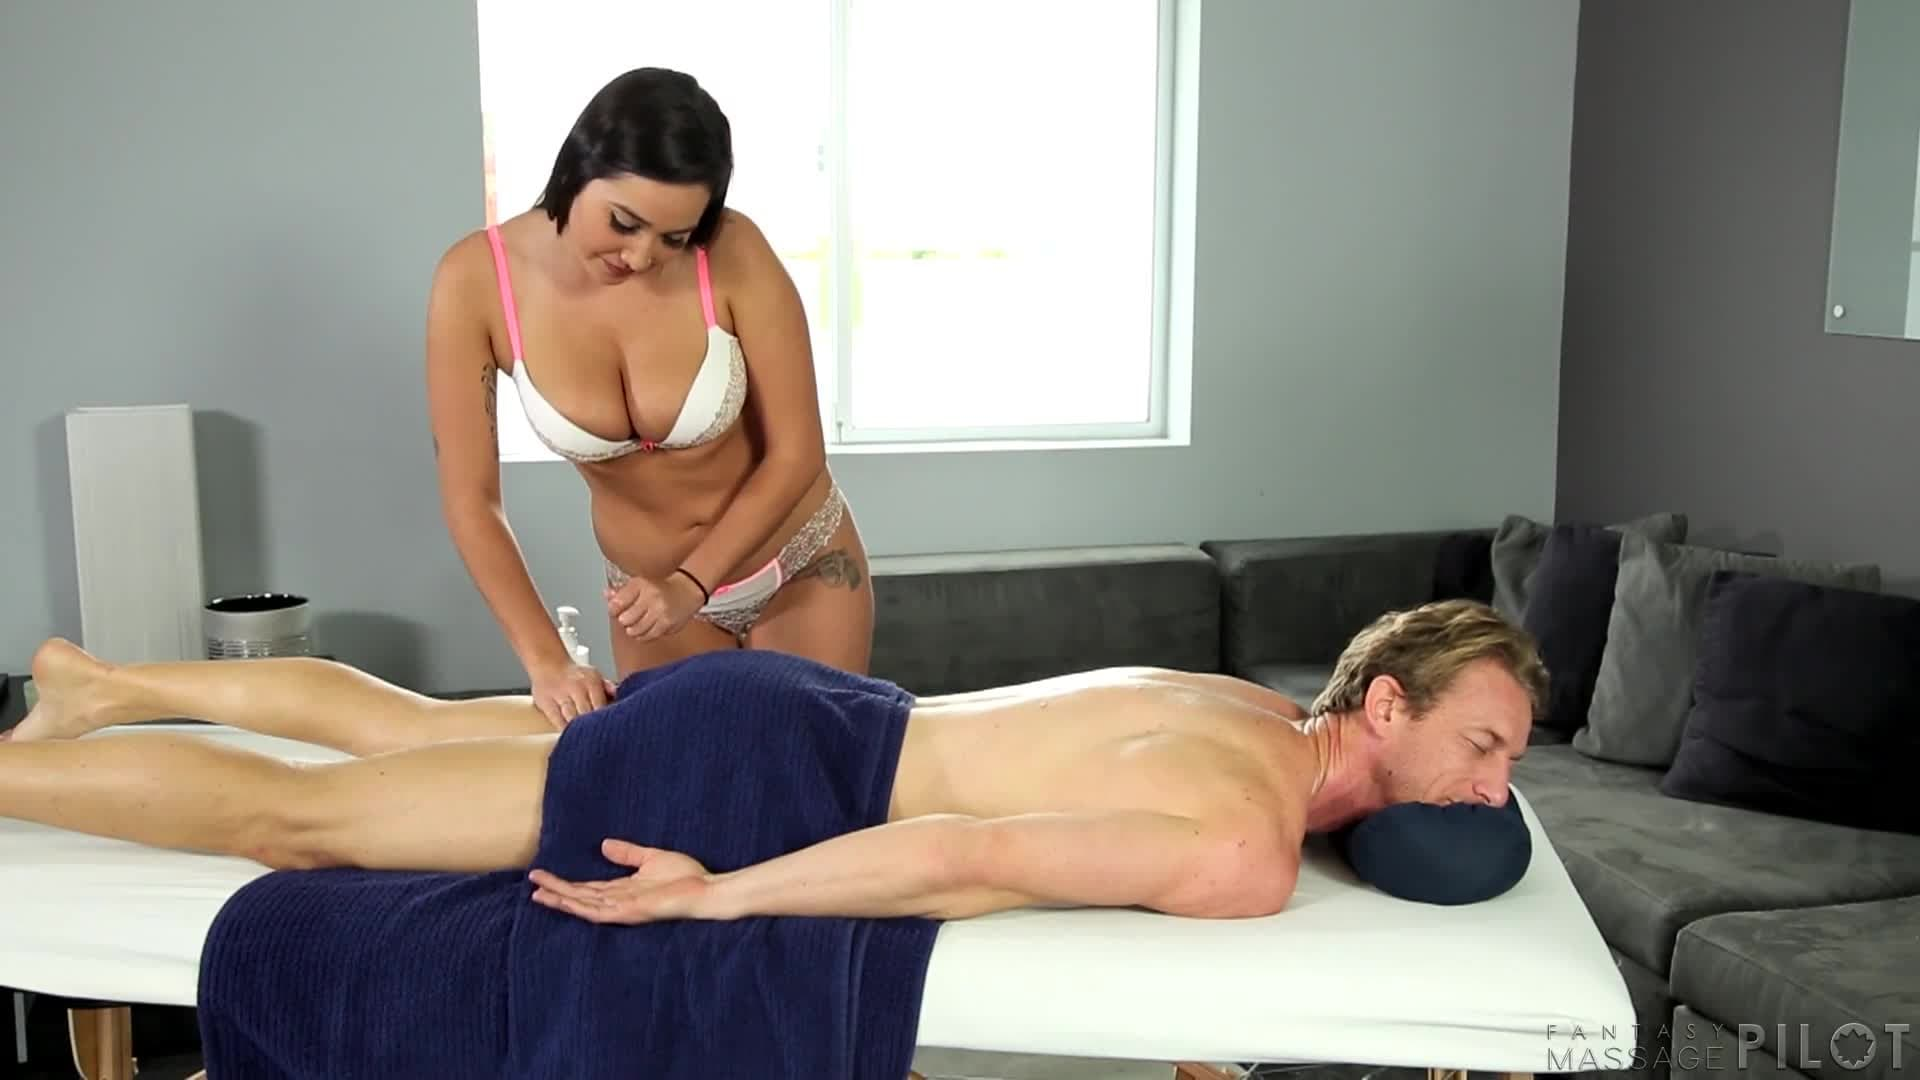 Lesbian Step Daughter Massage